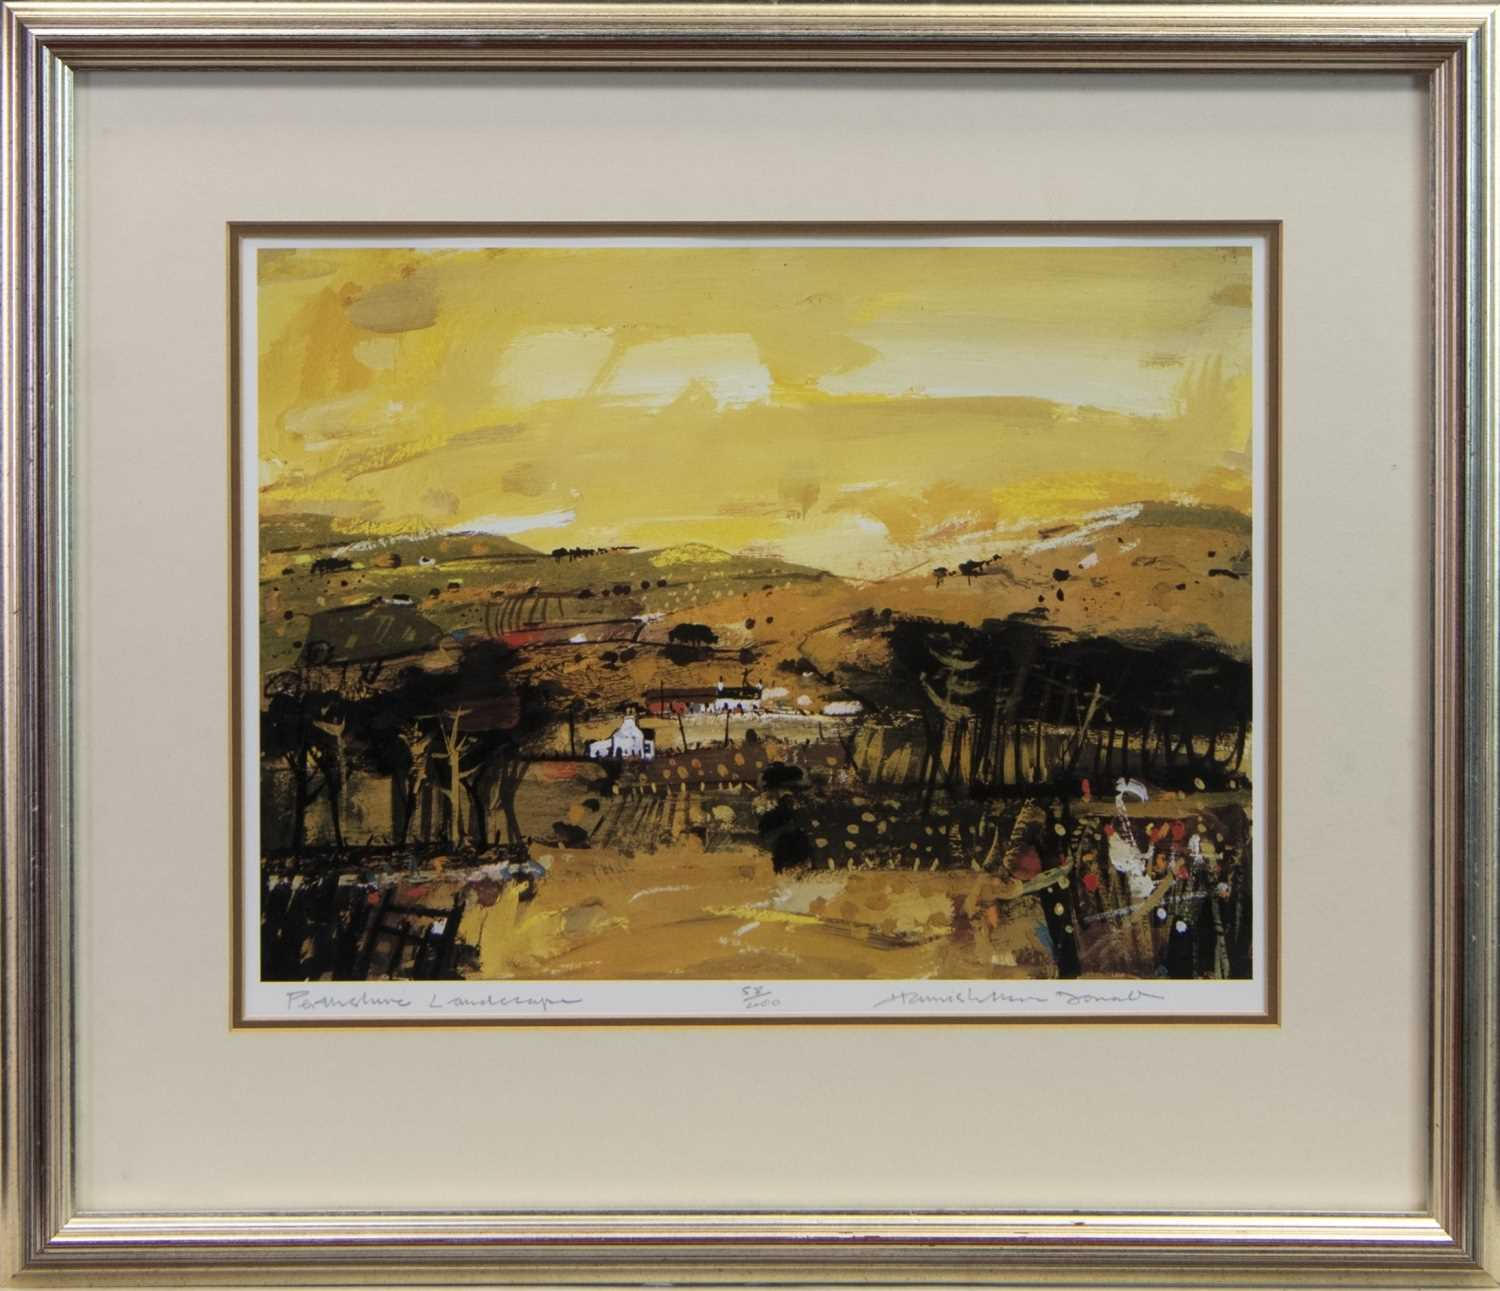 Lot 112 - PERTHSHIRE LANDSCAPE, A SIGNED LTD EDITION LITHOGRAPH BY HAMISH MACDONALD